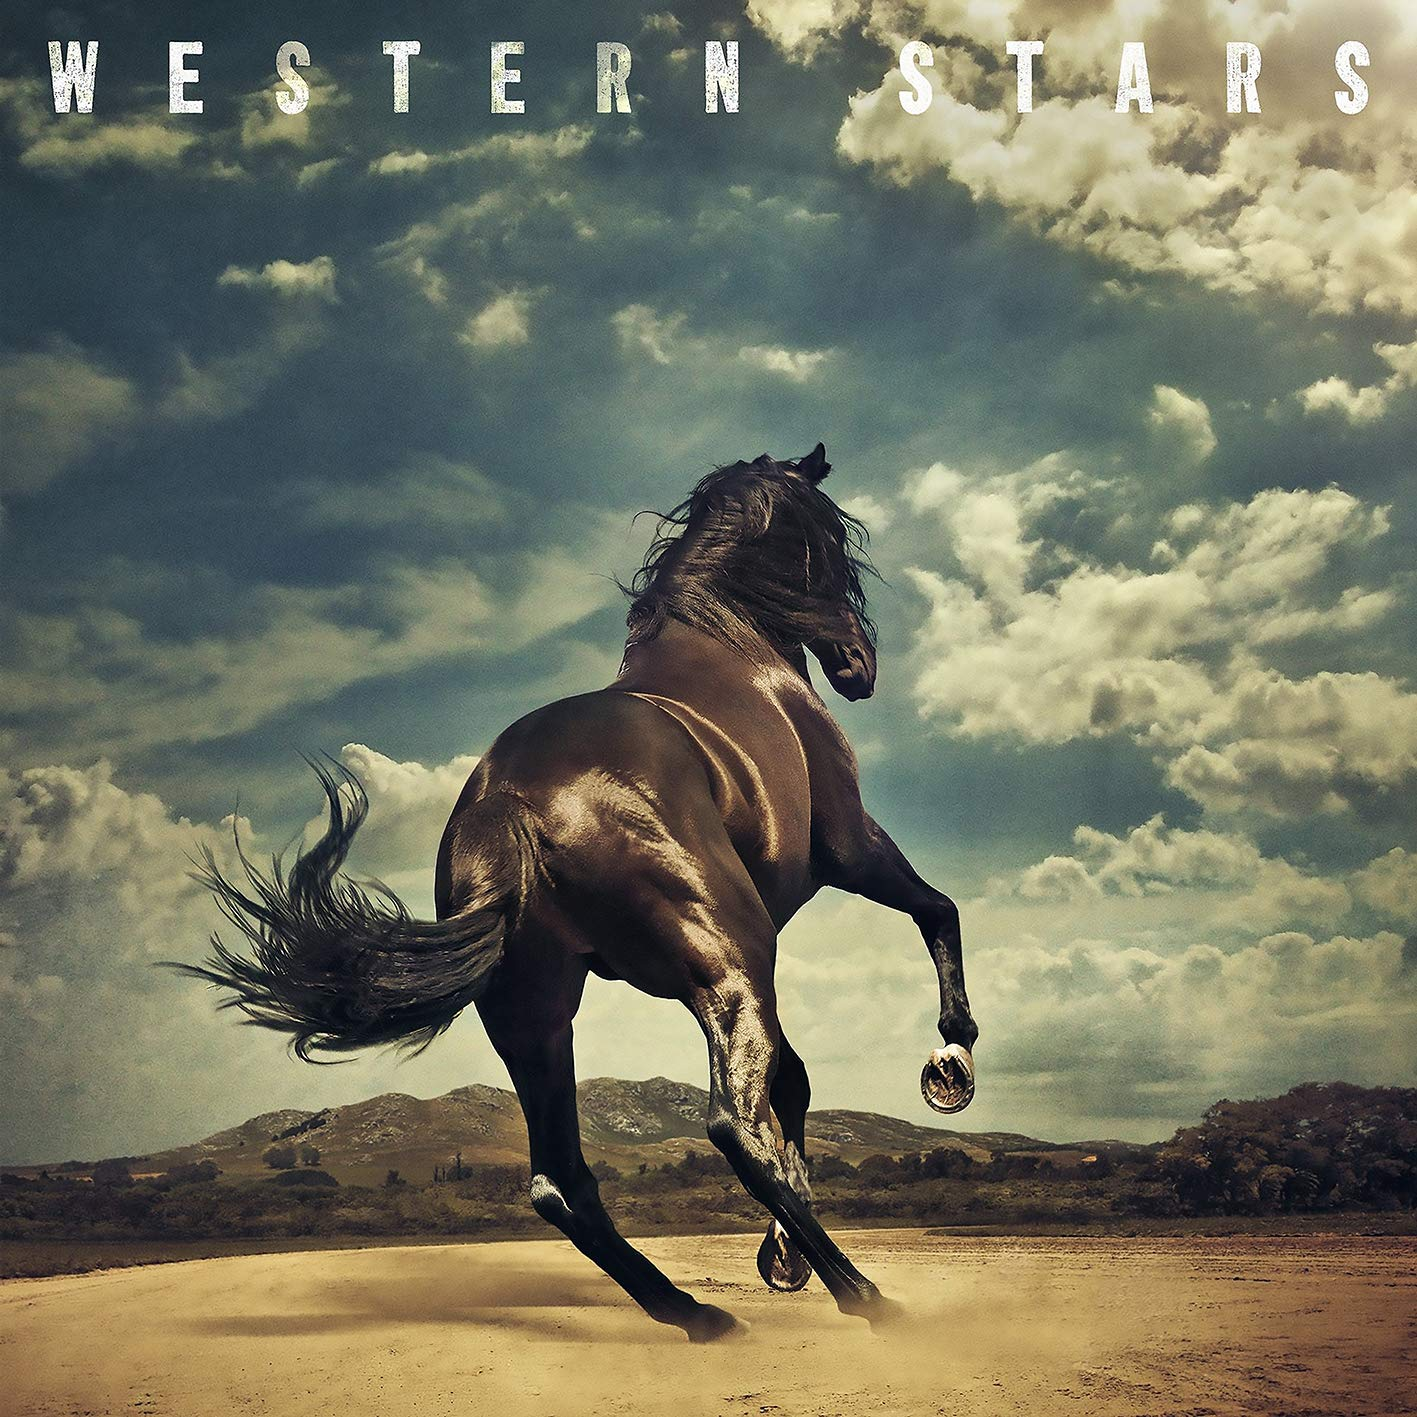 Buy Bruce Springsteen: Western Stars New or Used via Amazon